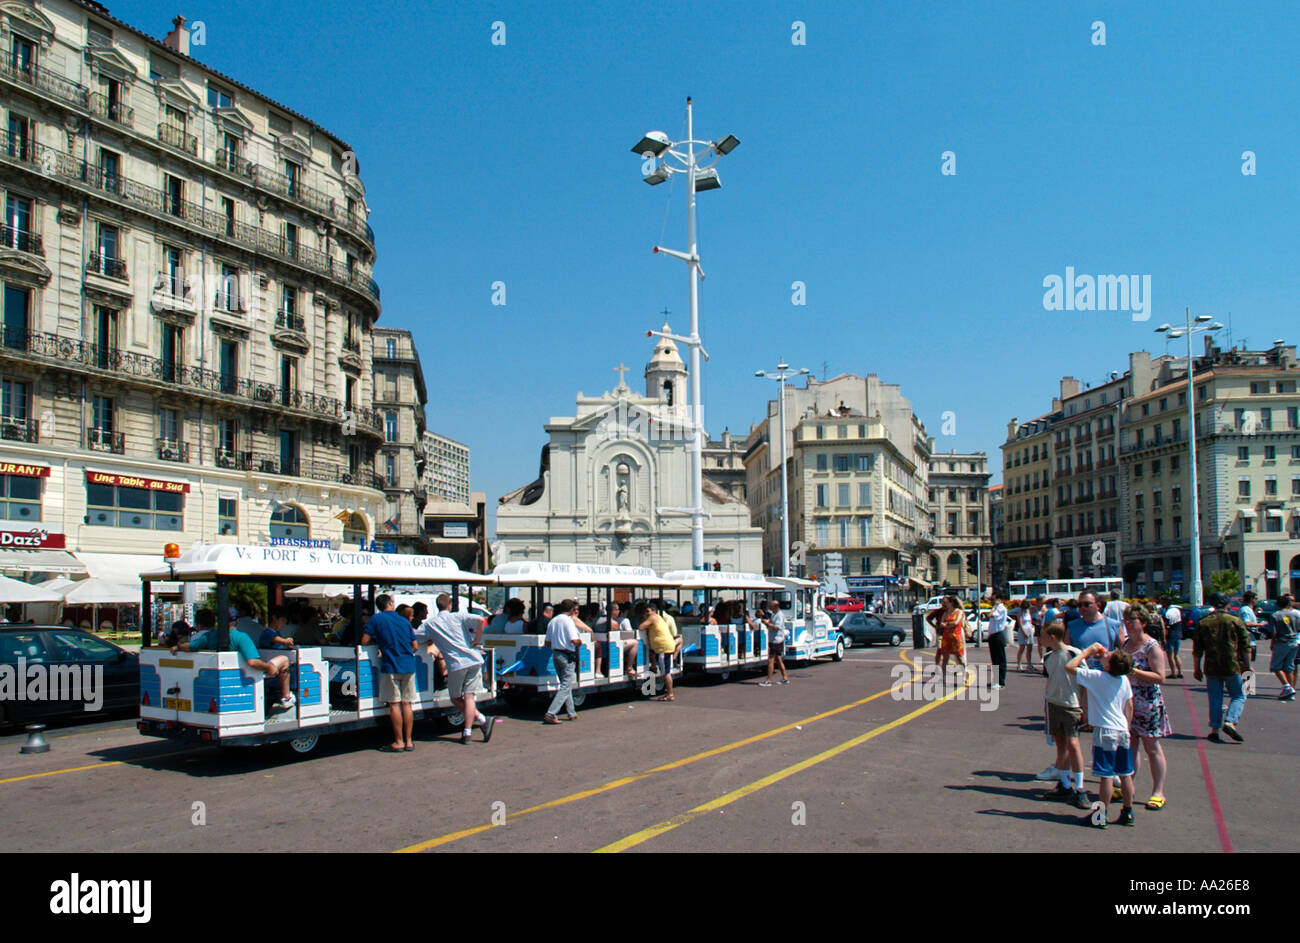 Tour tram train on the quai du port vieux port marseille france stock photo 665320 alamy - Starbucks marseille vieux port ...